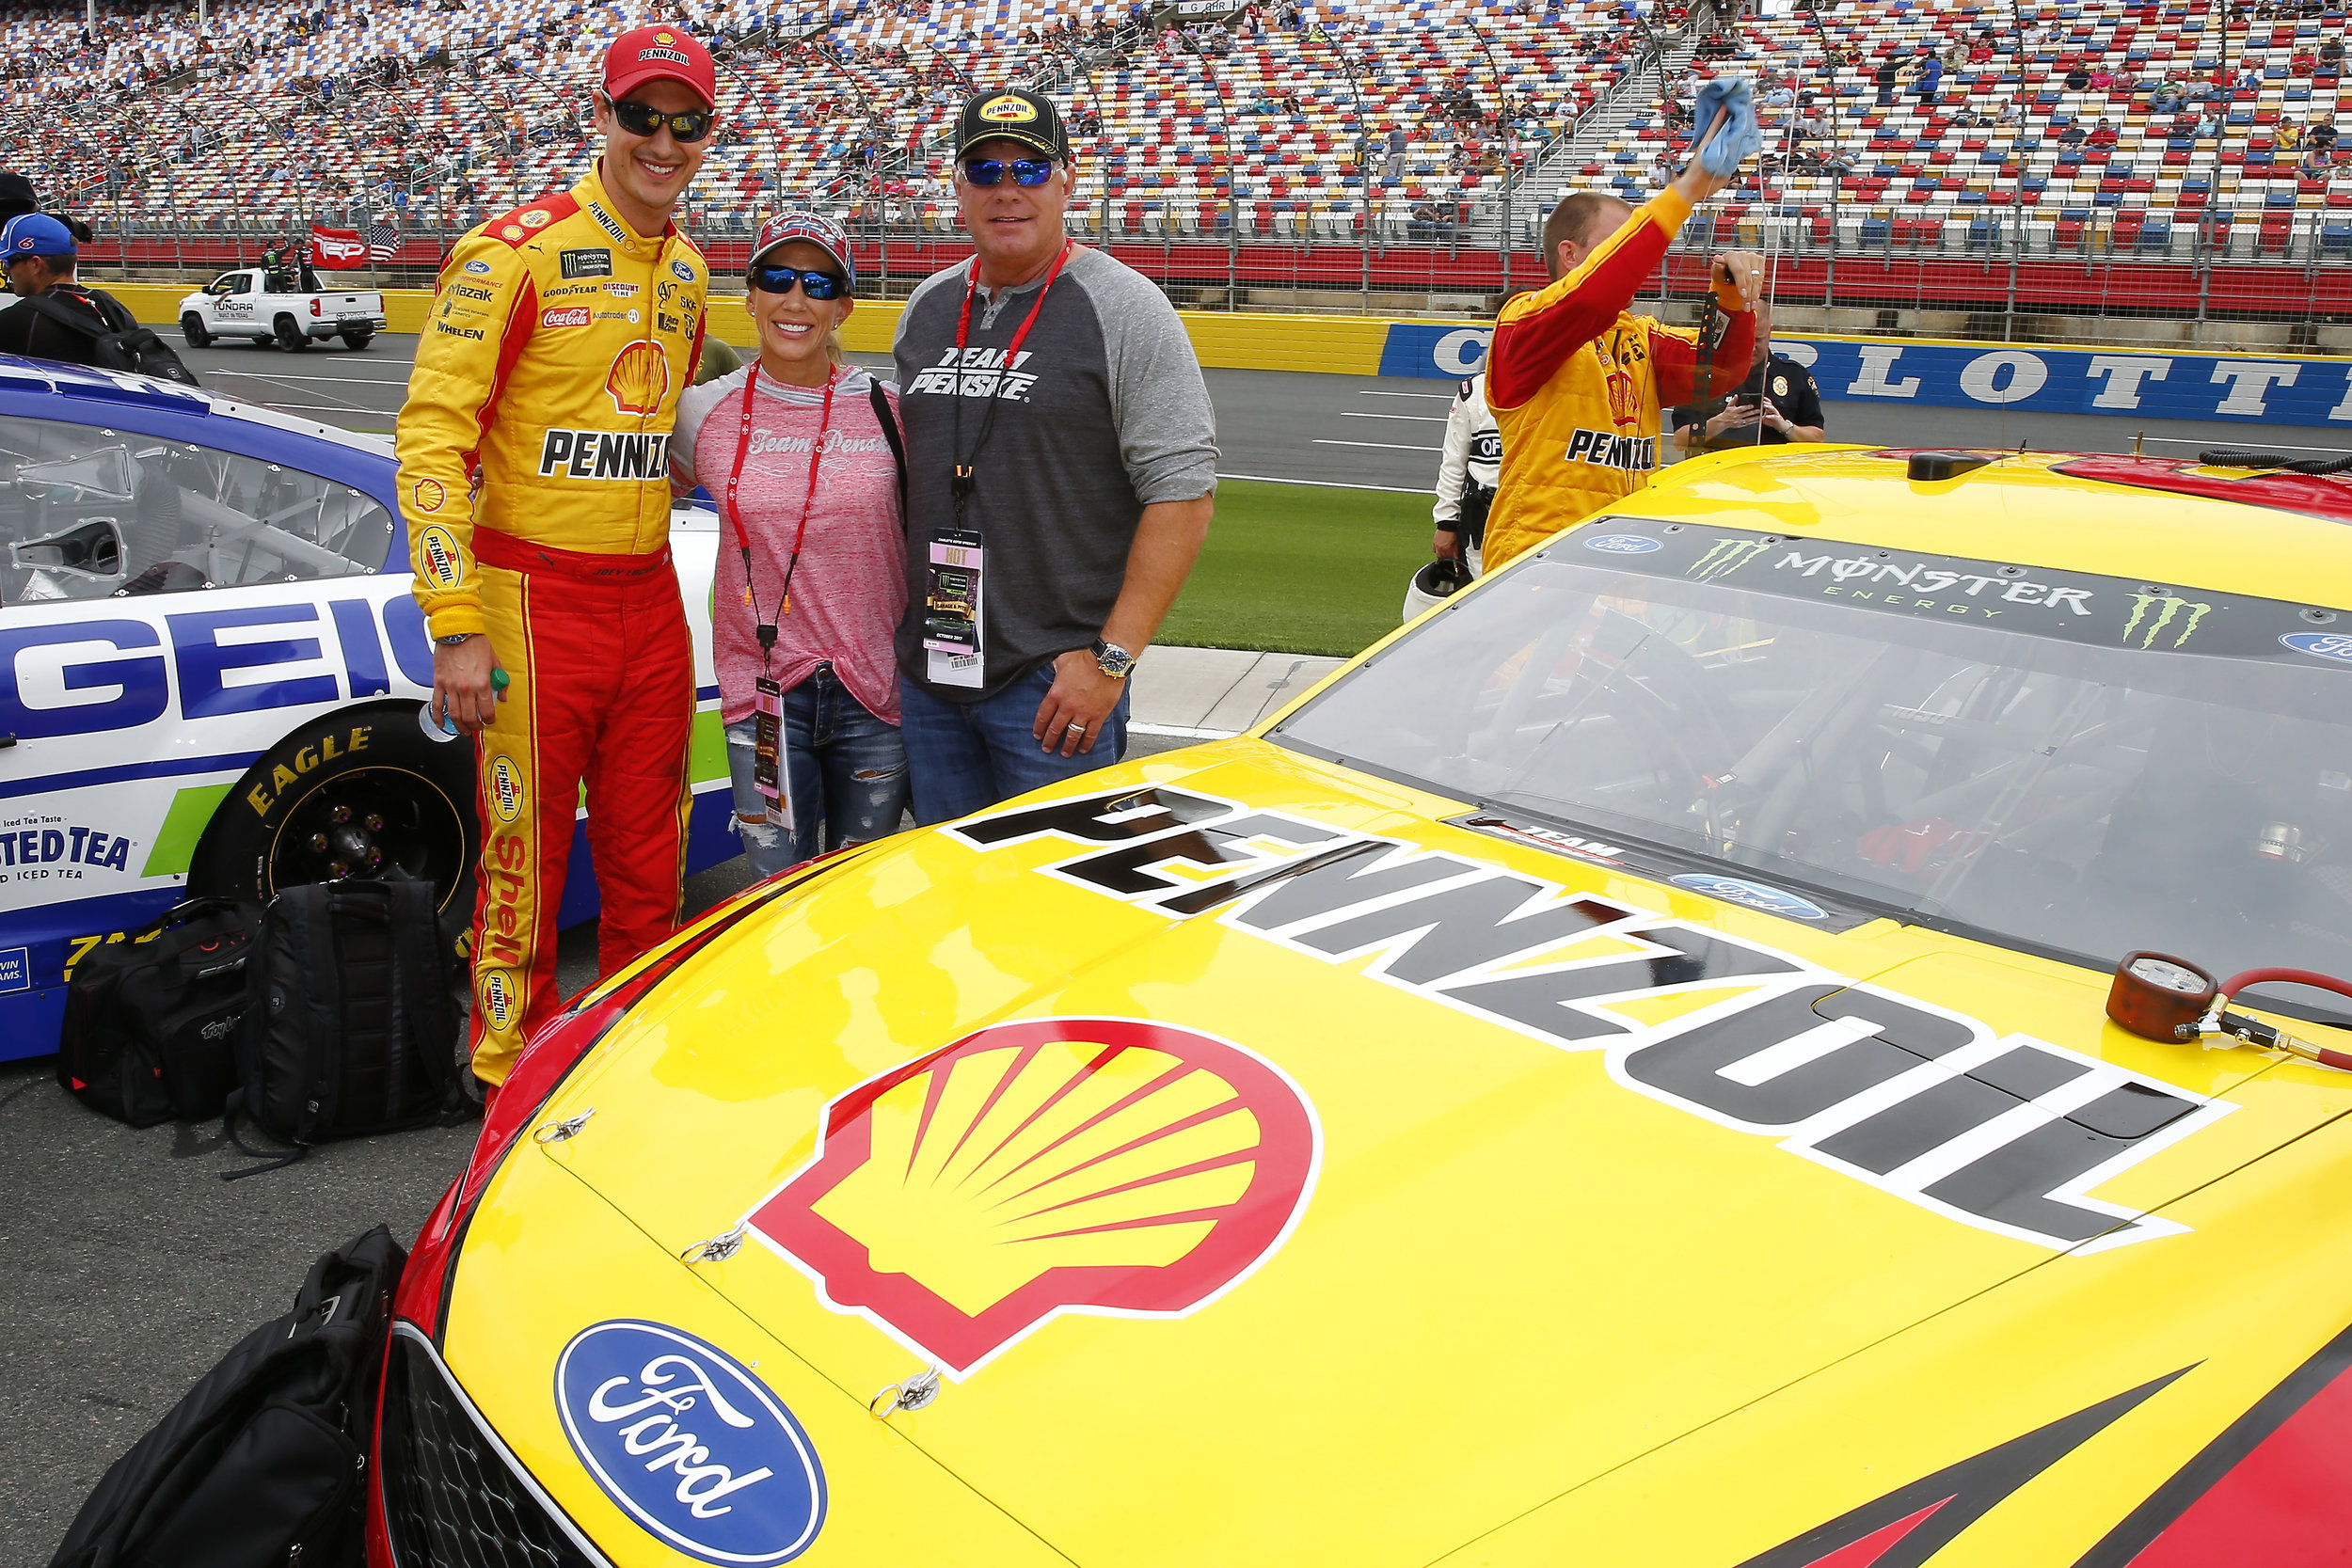 Guests from Jiffy Lube enjoy meeting Joey Logano on the grid ahead of the race.